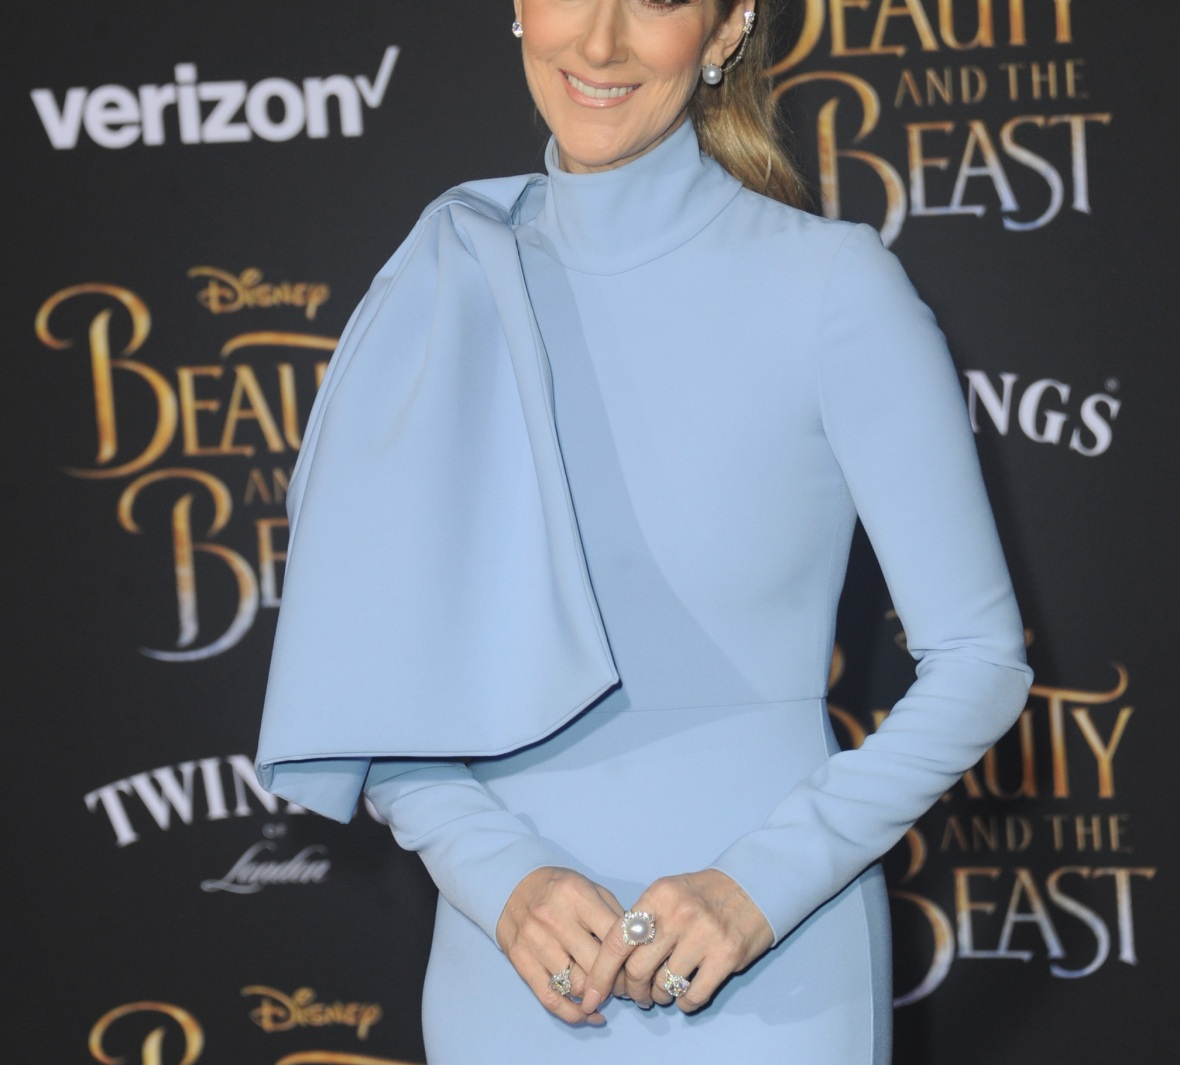 celine dion disney - getty